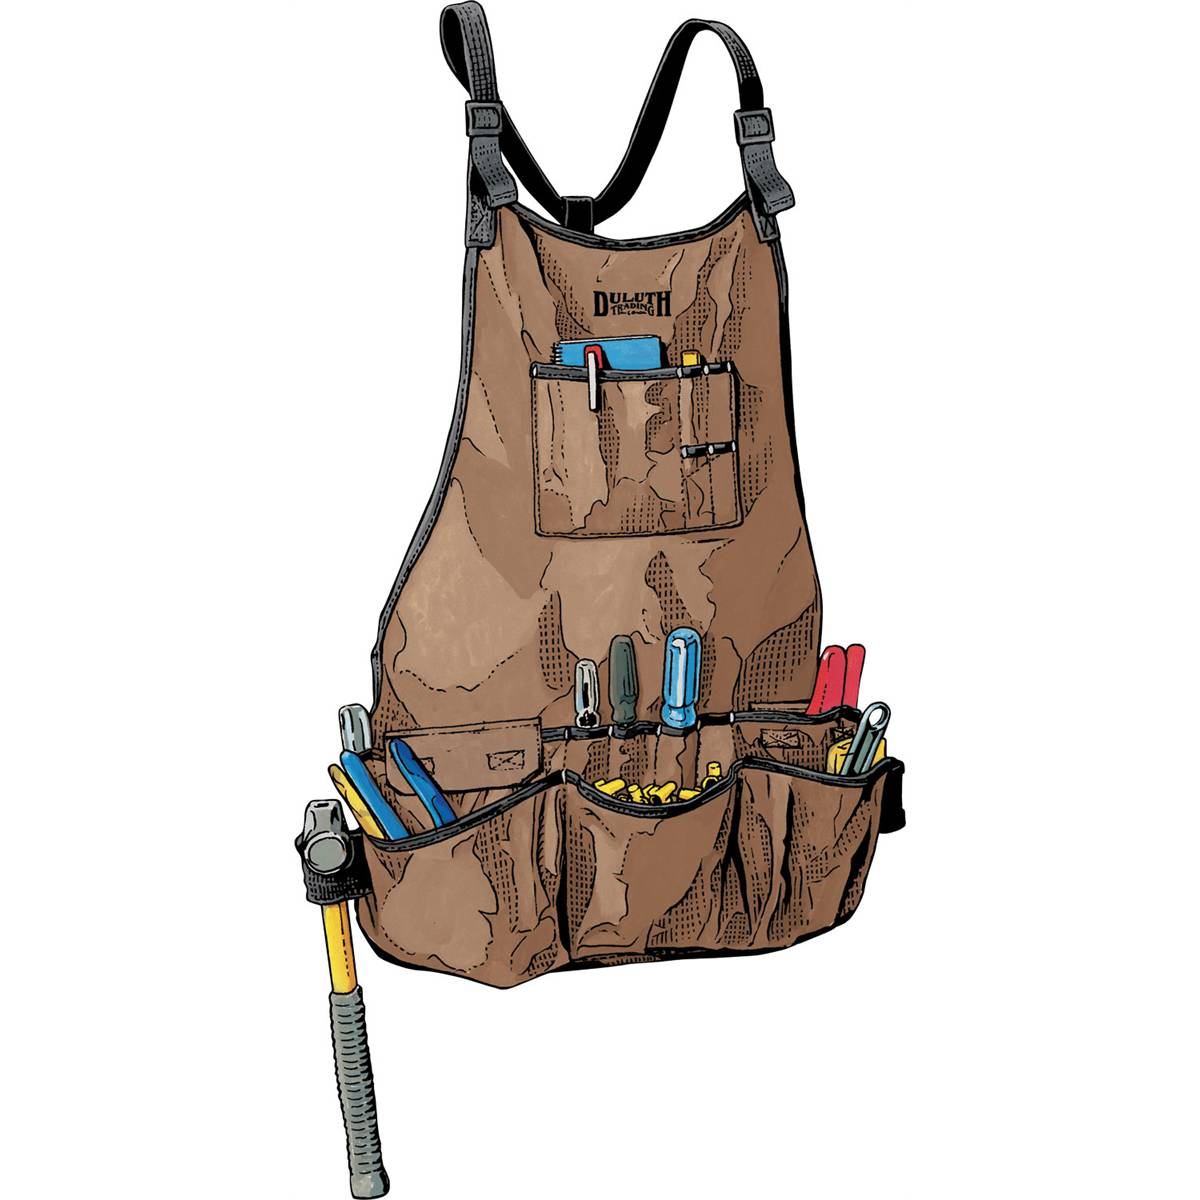 woodworking apron australia » plansdownload